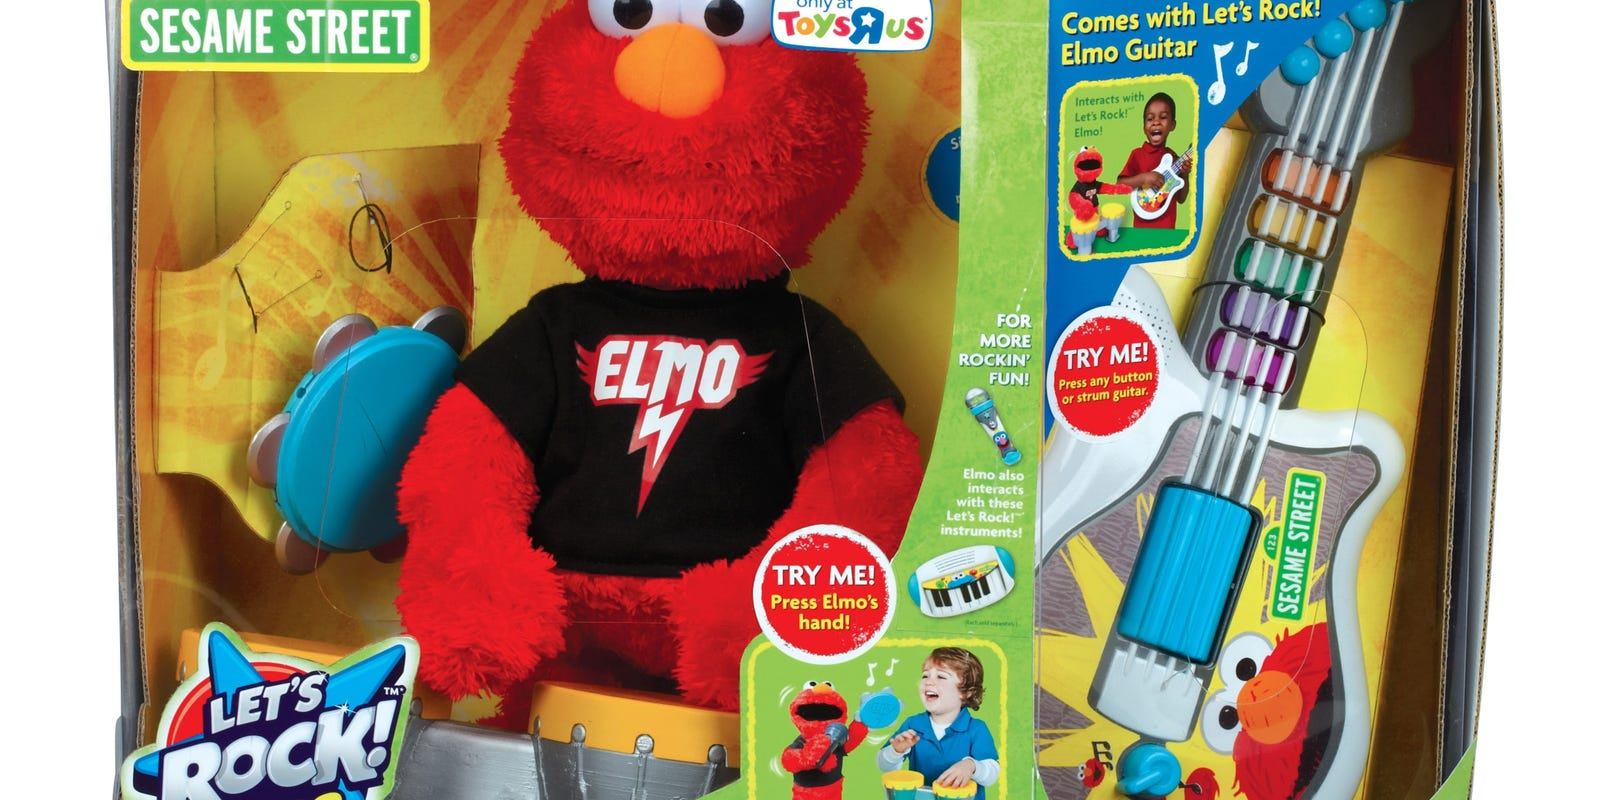 elmo chat Play educational games, watch videos, and create art with elmo, cookie monster, abby cadabby, big bird, and more of your favorite muppets.